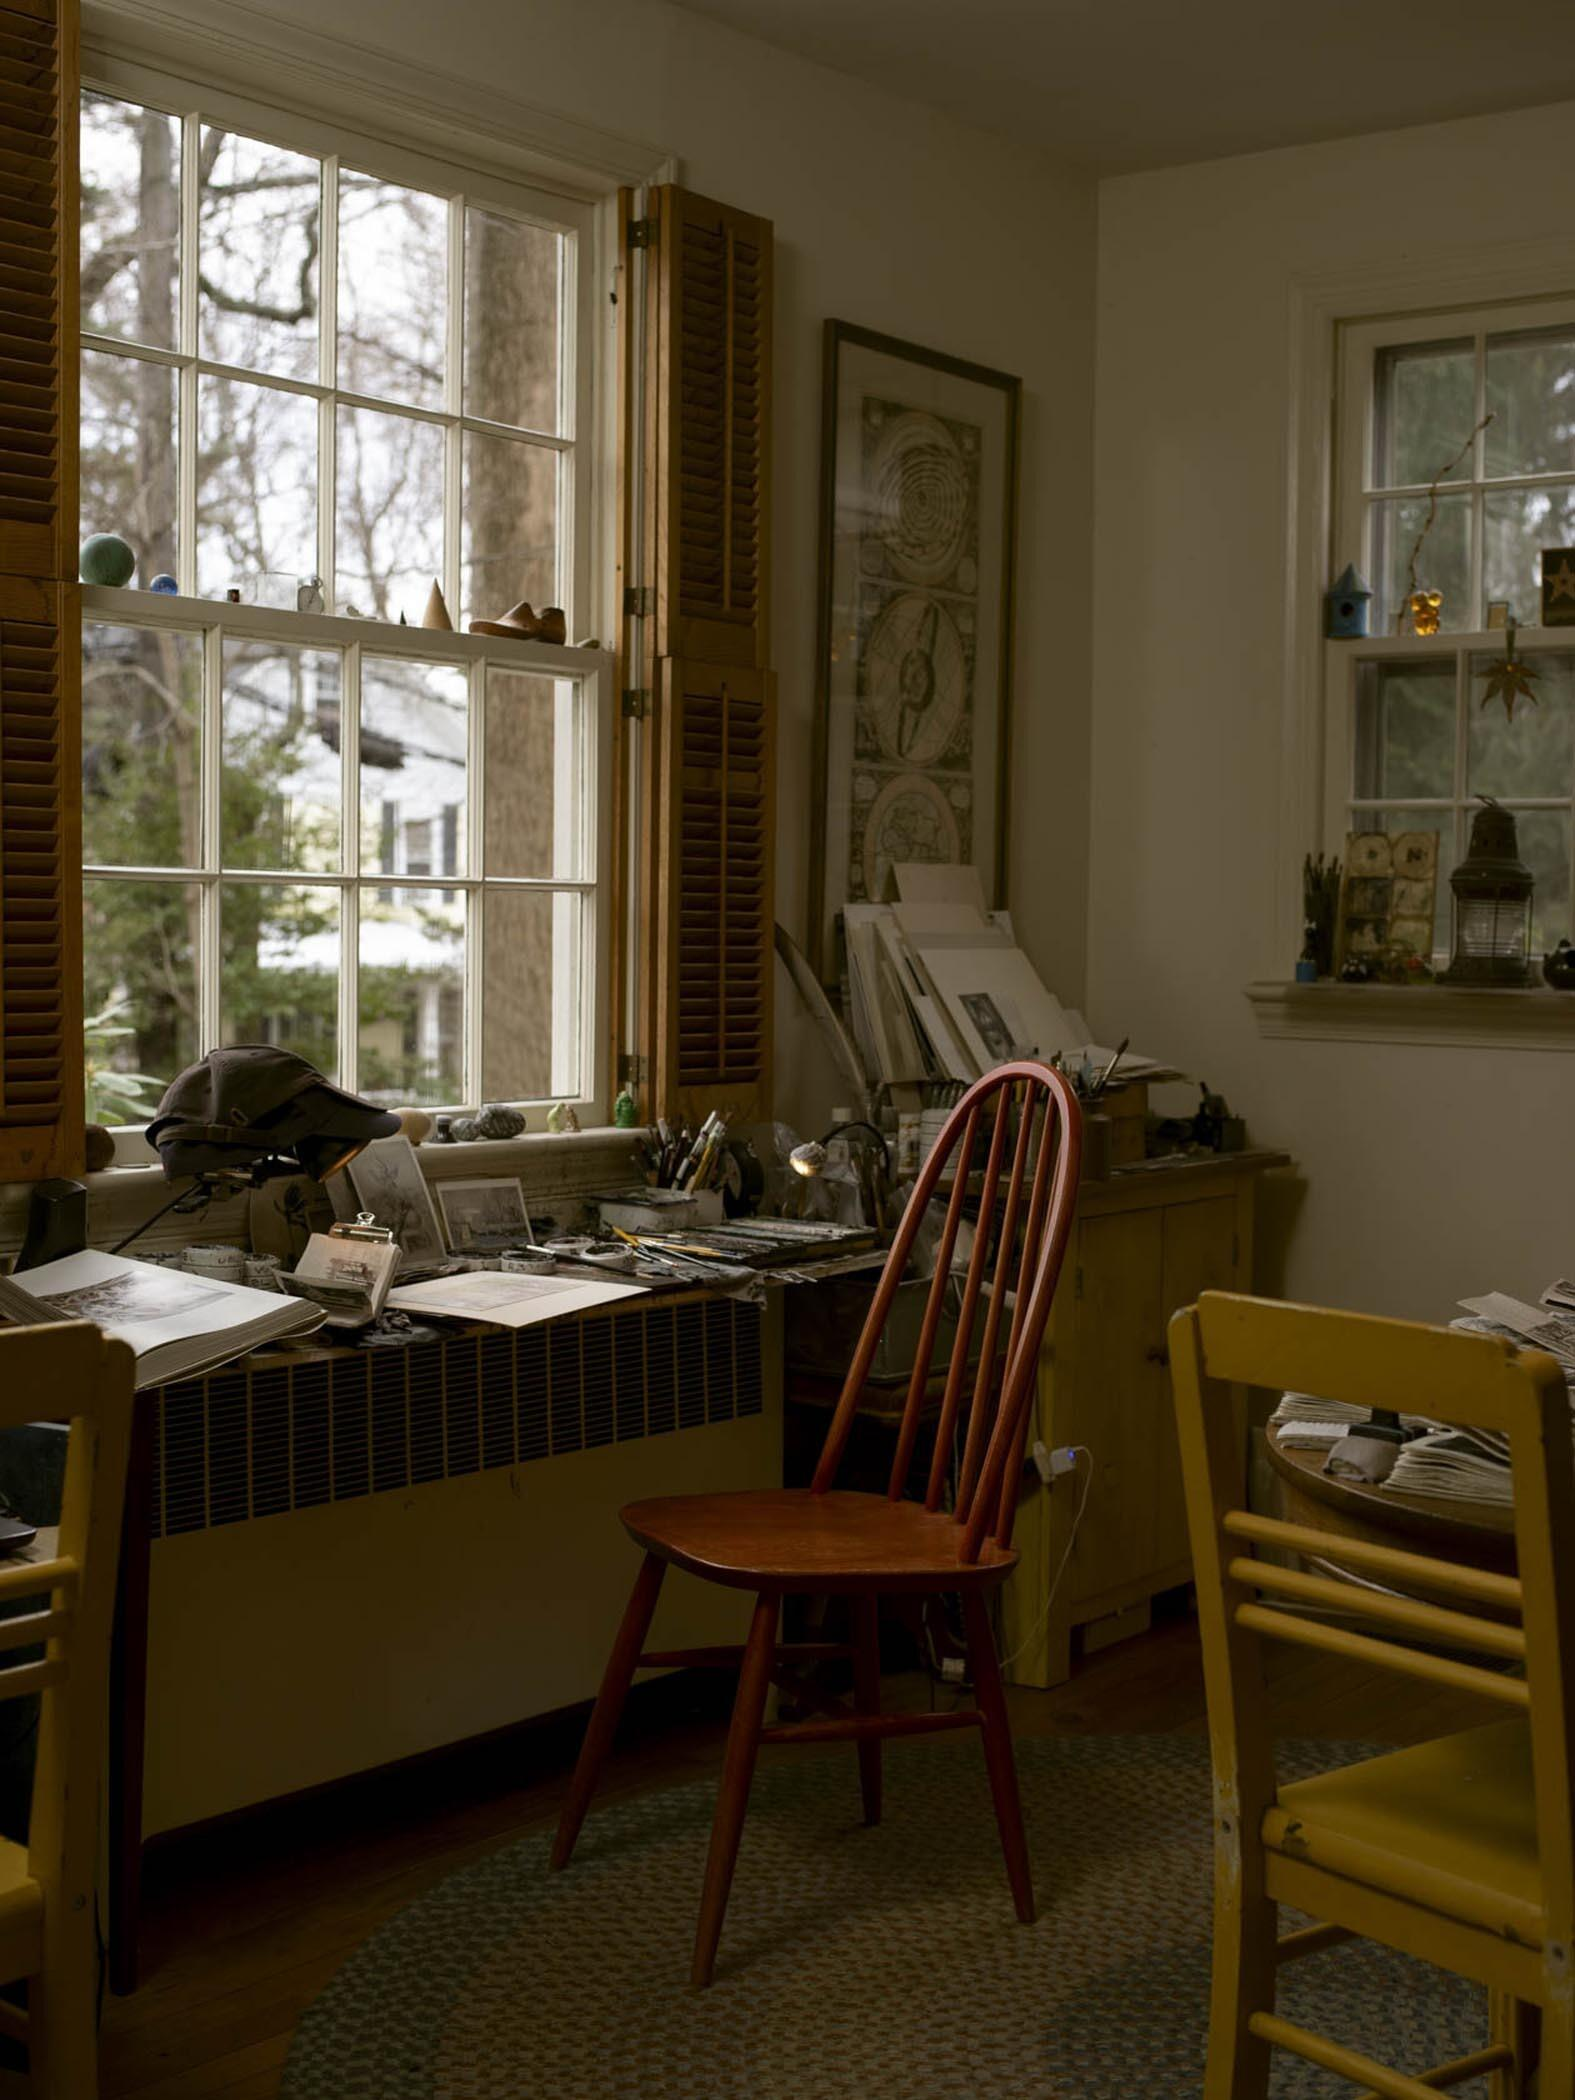 Photograph of the Artist's Desk, Window, and Chair, 2020. See Instagram Artist in the Studio feature @JasonHaam, April 2021. image